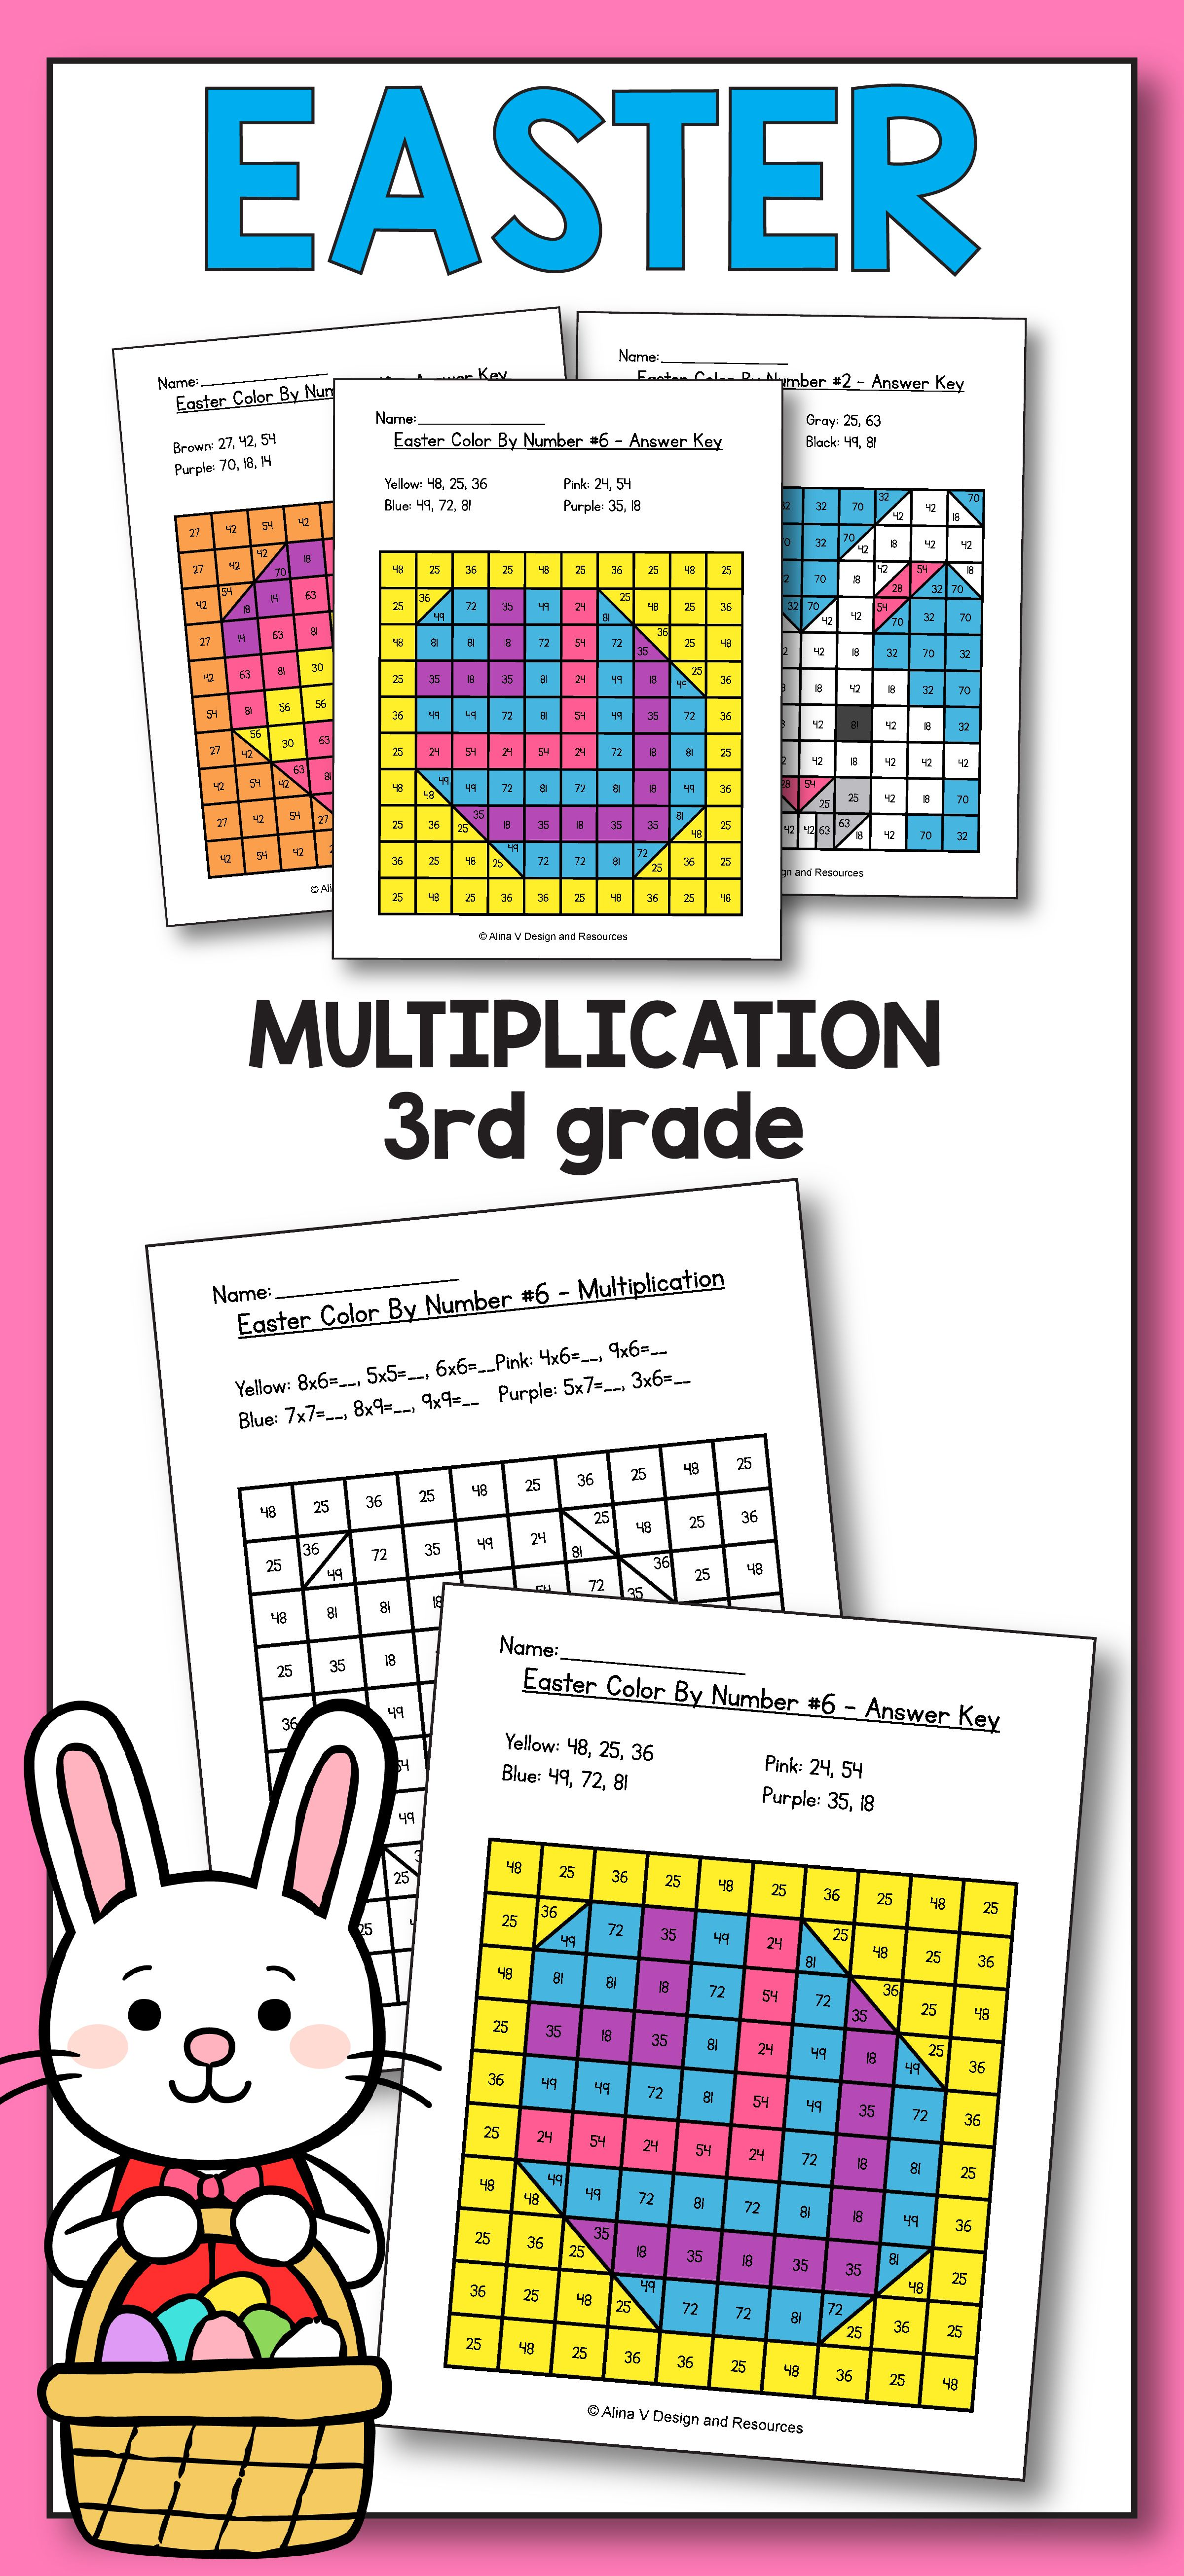 small resolution of Easter Multiplication Math Worksheets for 3rd grade kids is fun with these  hundreds chart printables…   Easter math